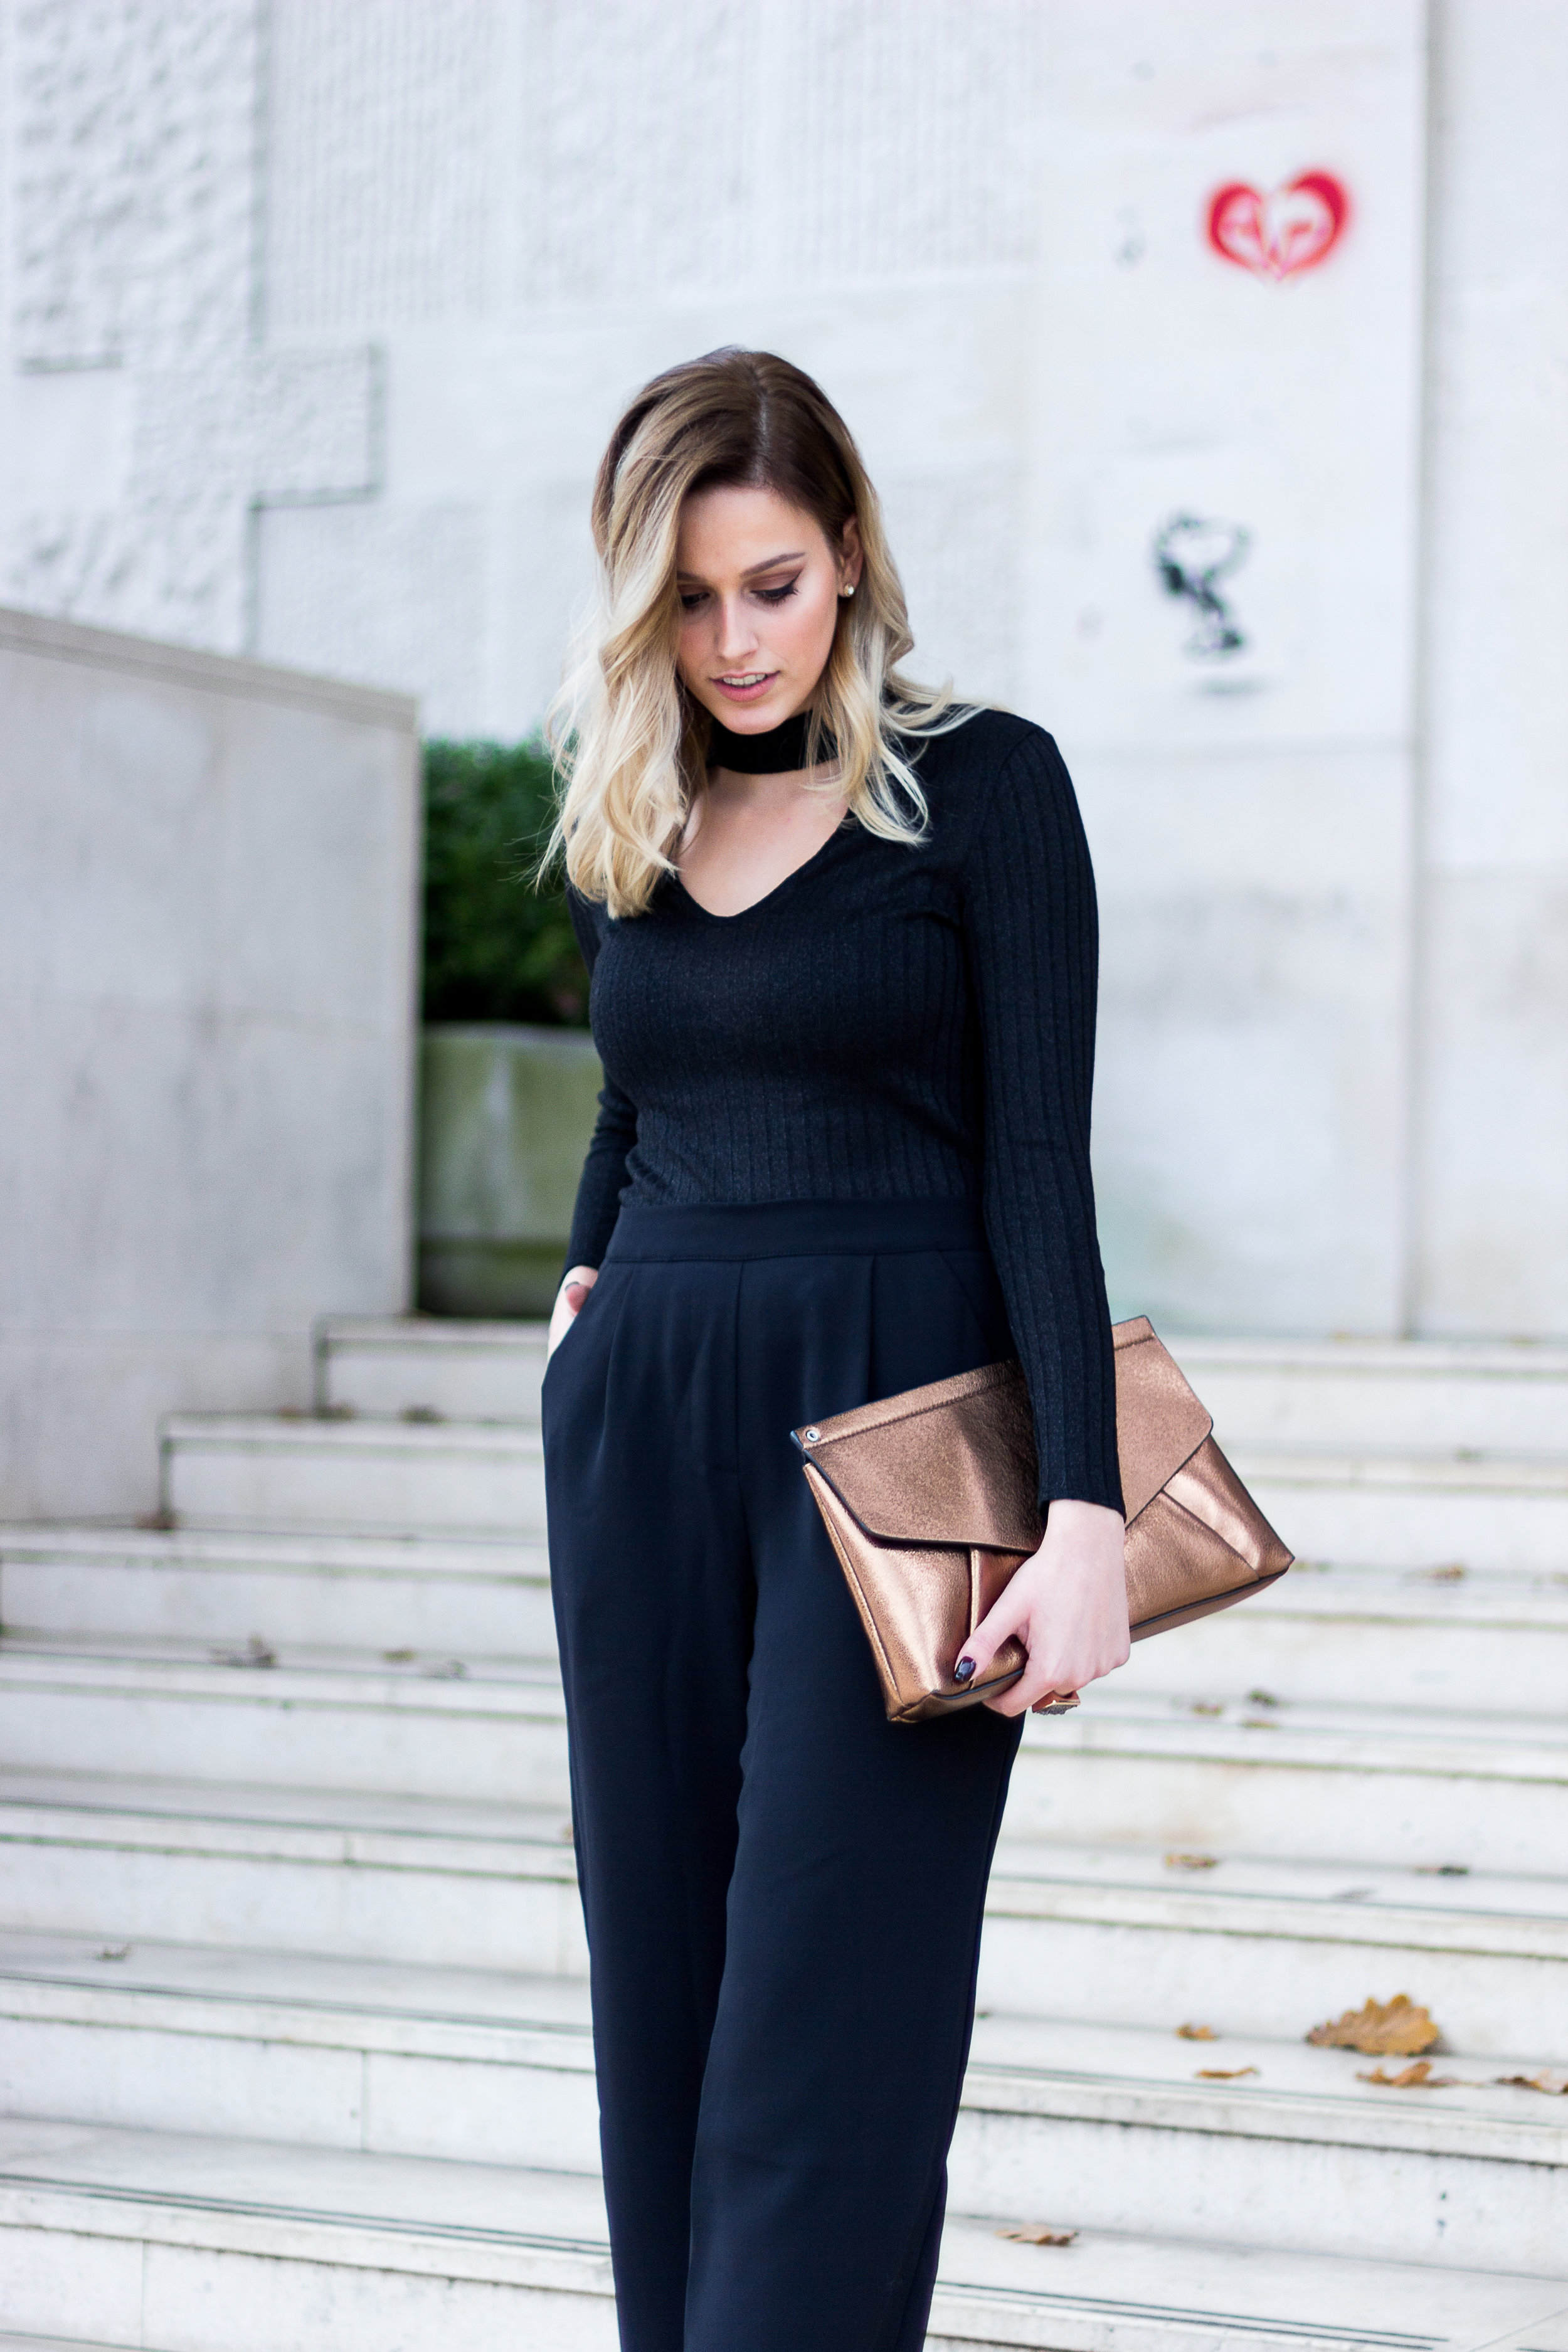 black outfit mainstream chic